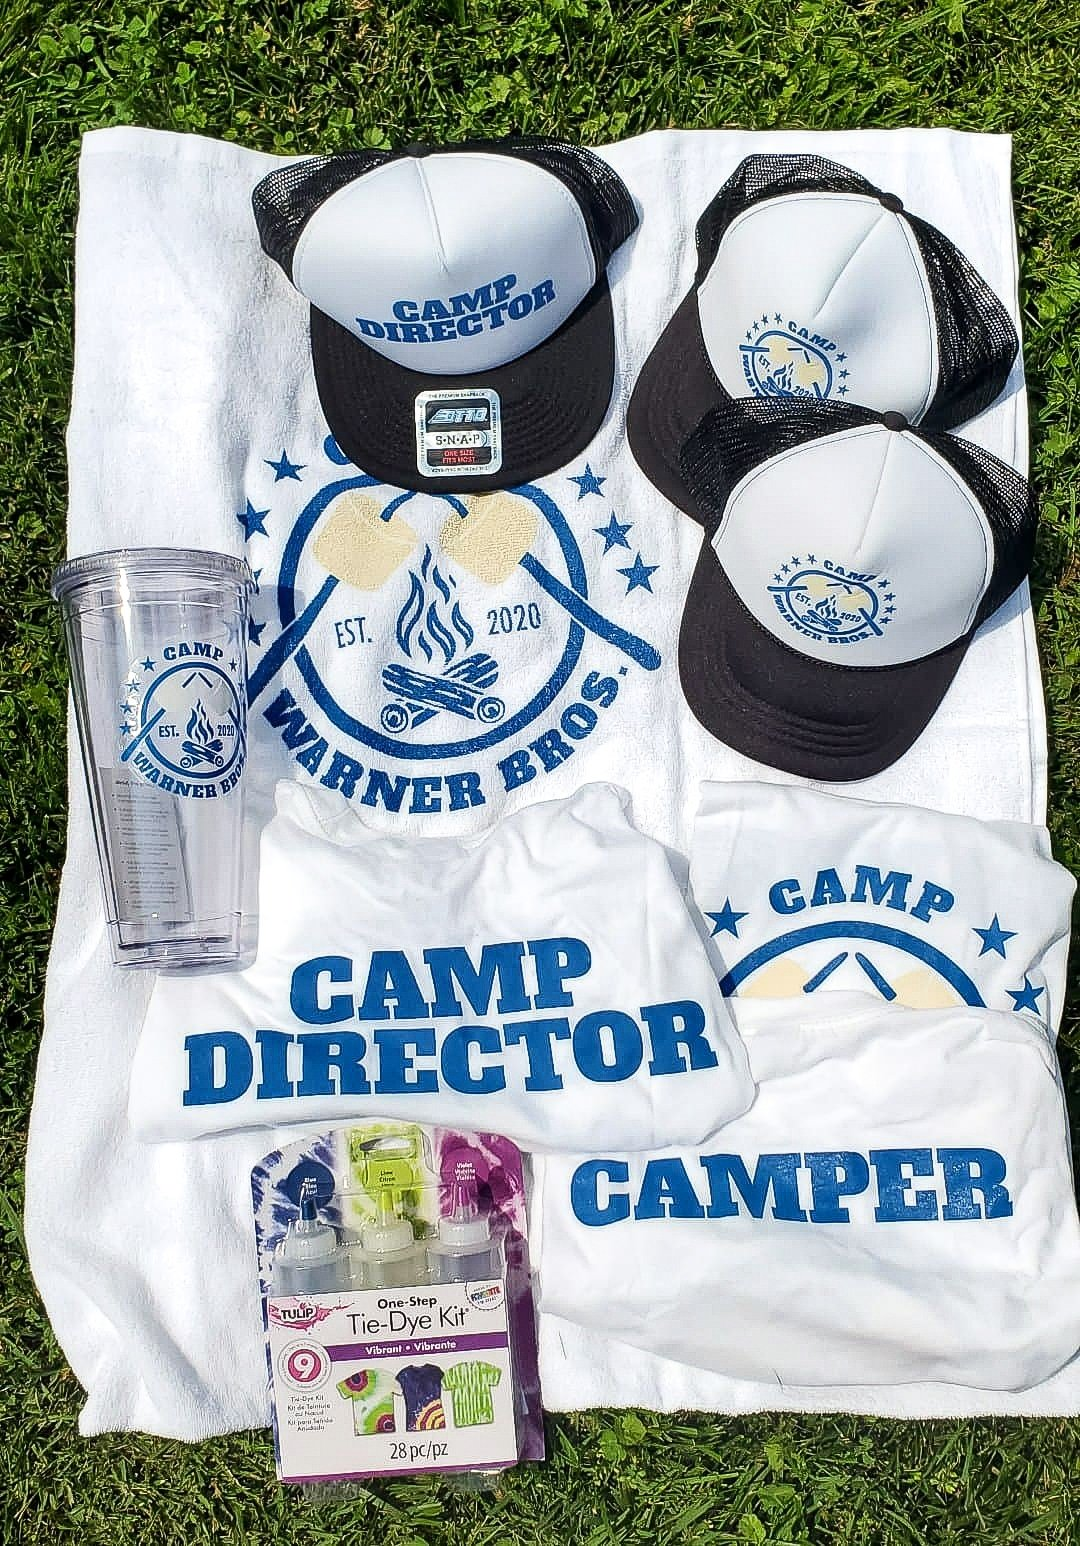 Camp Warner Bros. Acceptance Package. Join us as we adventure through 8 weeks of Virtual Camp Warner Bros. Each week will feature a new fun family friendly activity and a Warner Bros. Show or Movie.